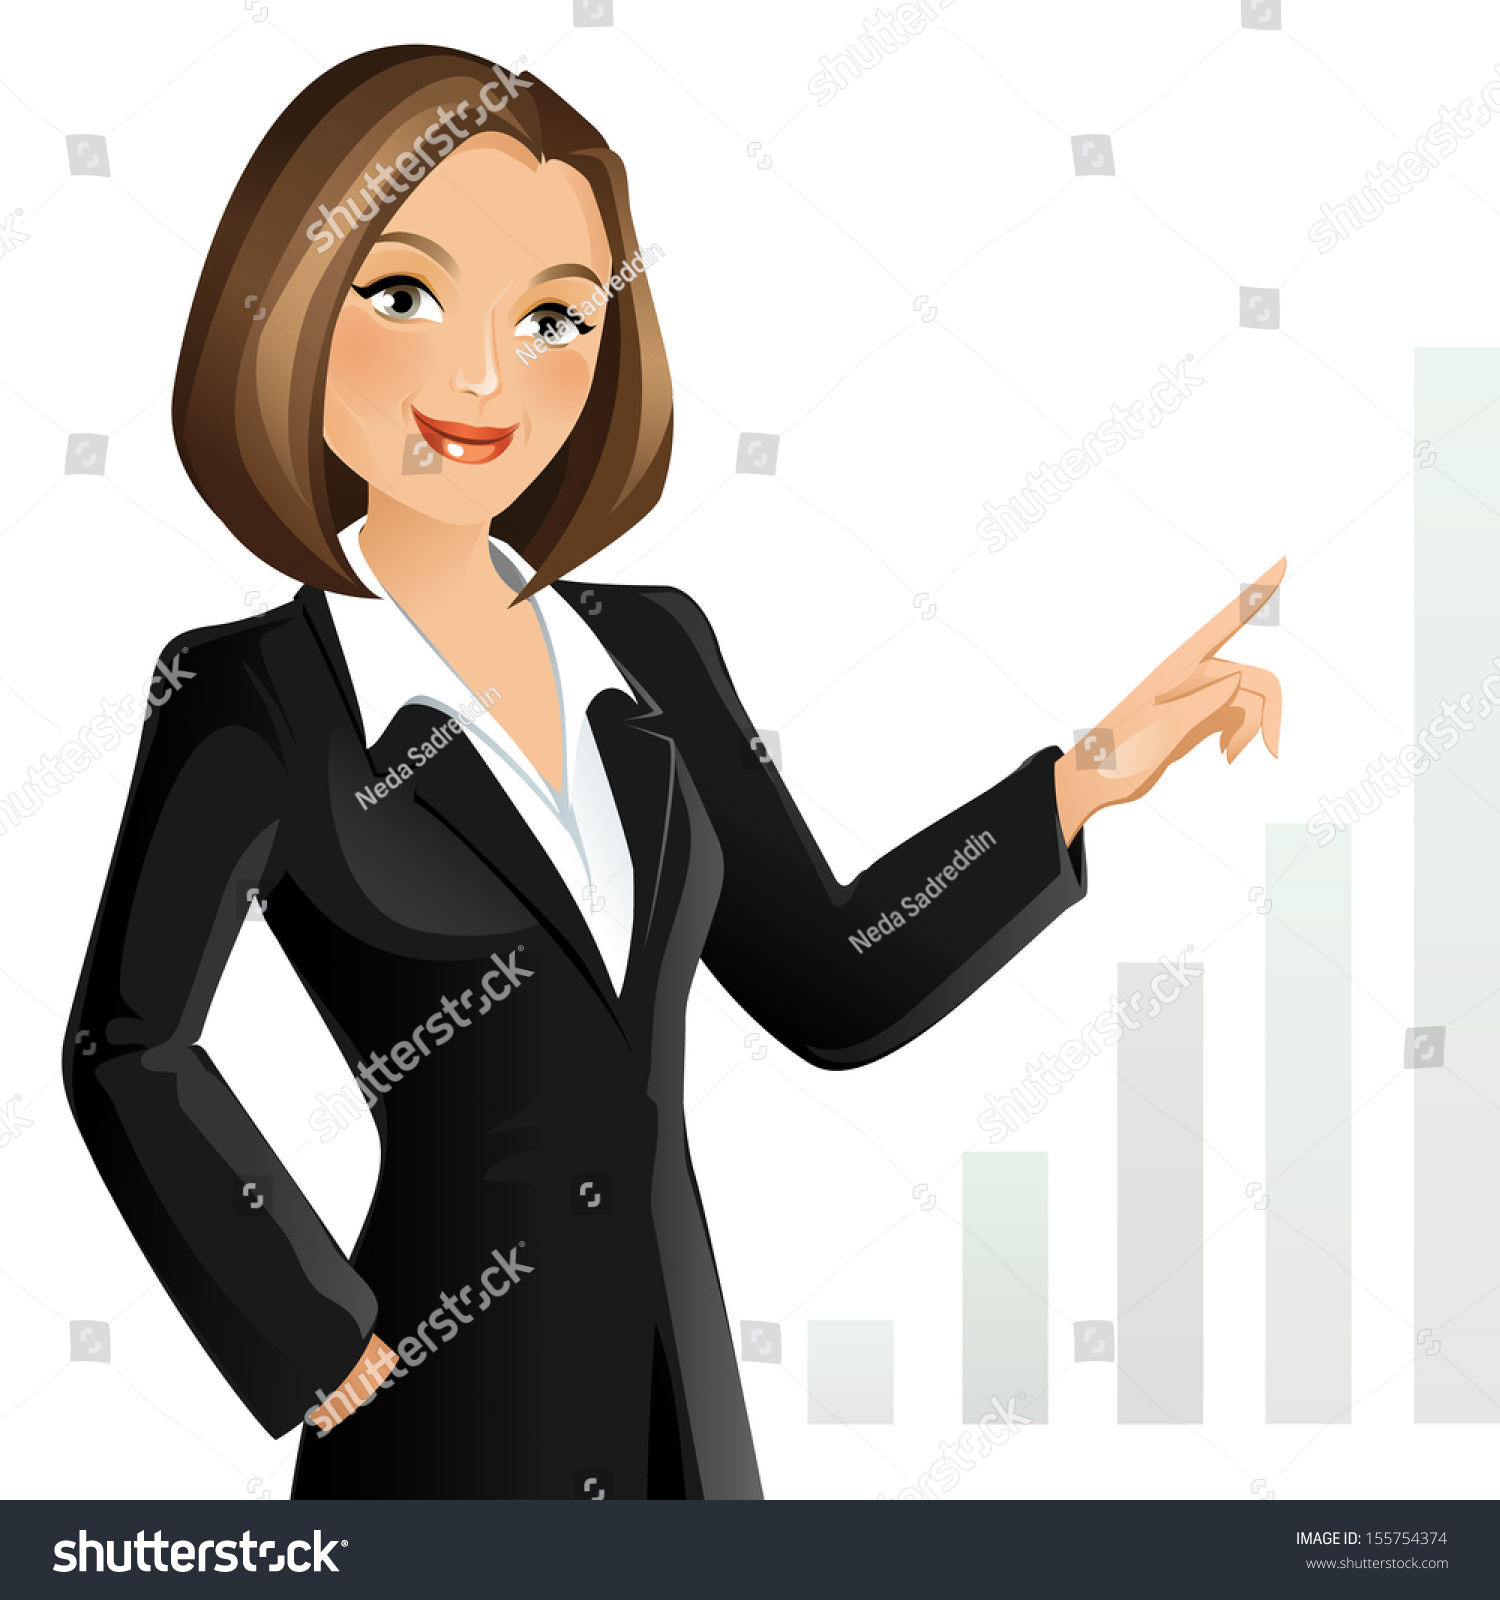 teachey black personals Search titles only has image posted today bundle duplicates include nearby areas annapolis, md (anp) asheville, nc (ash.